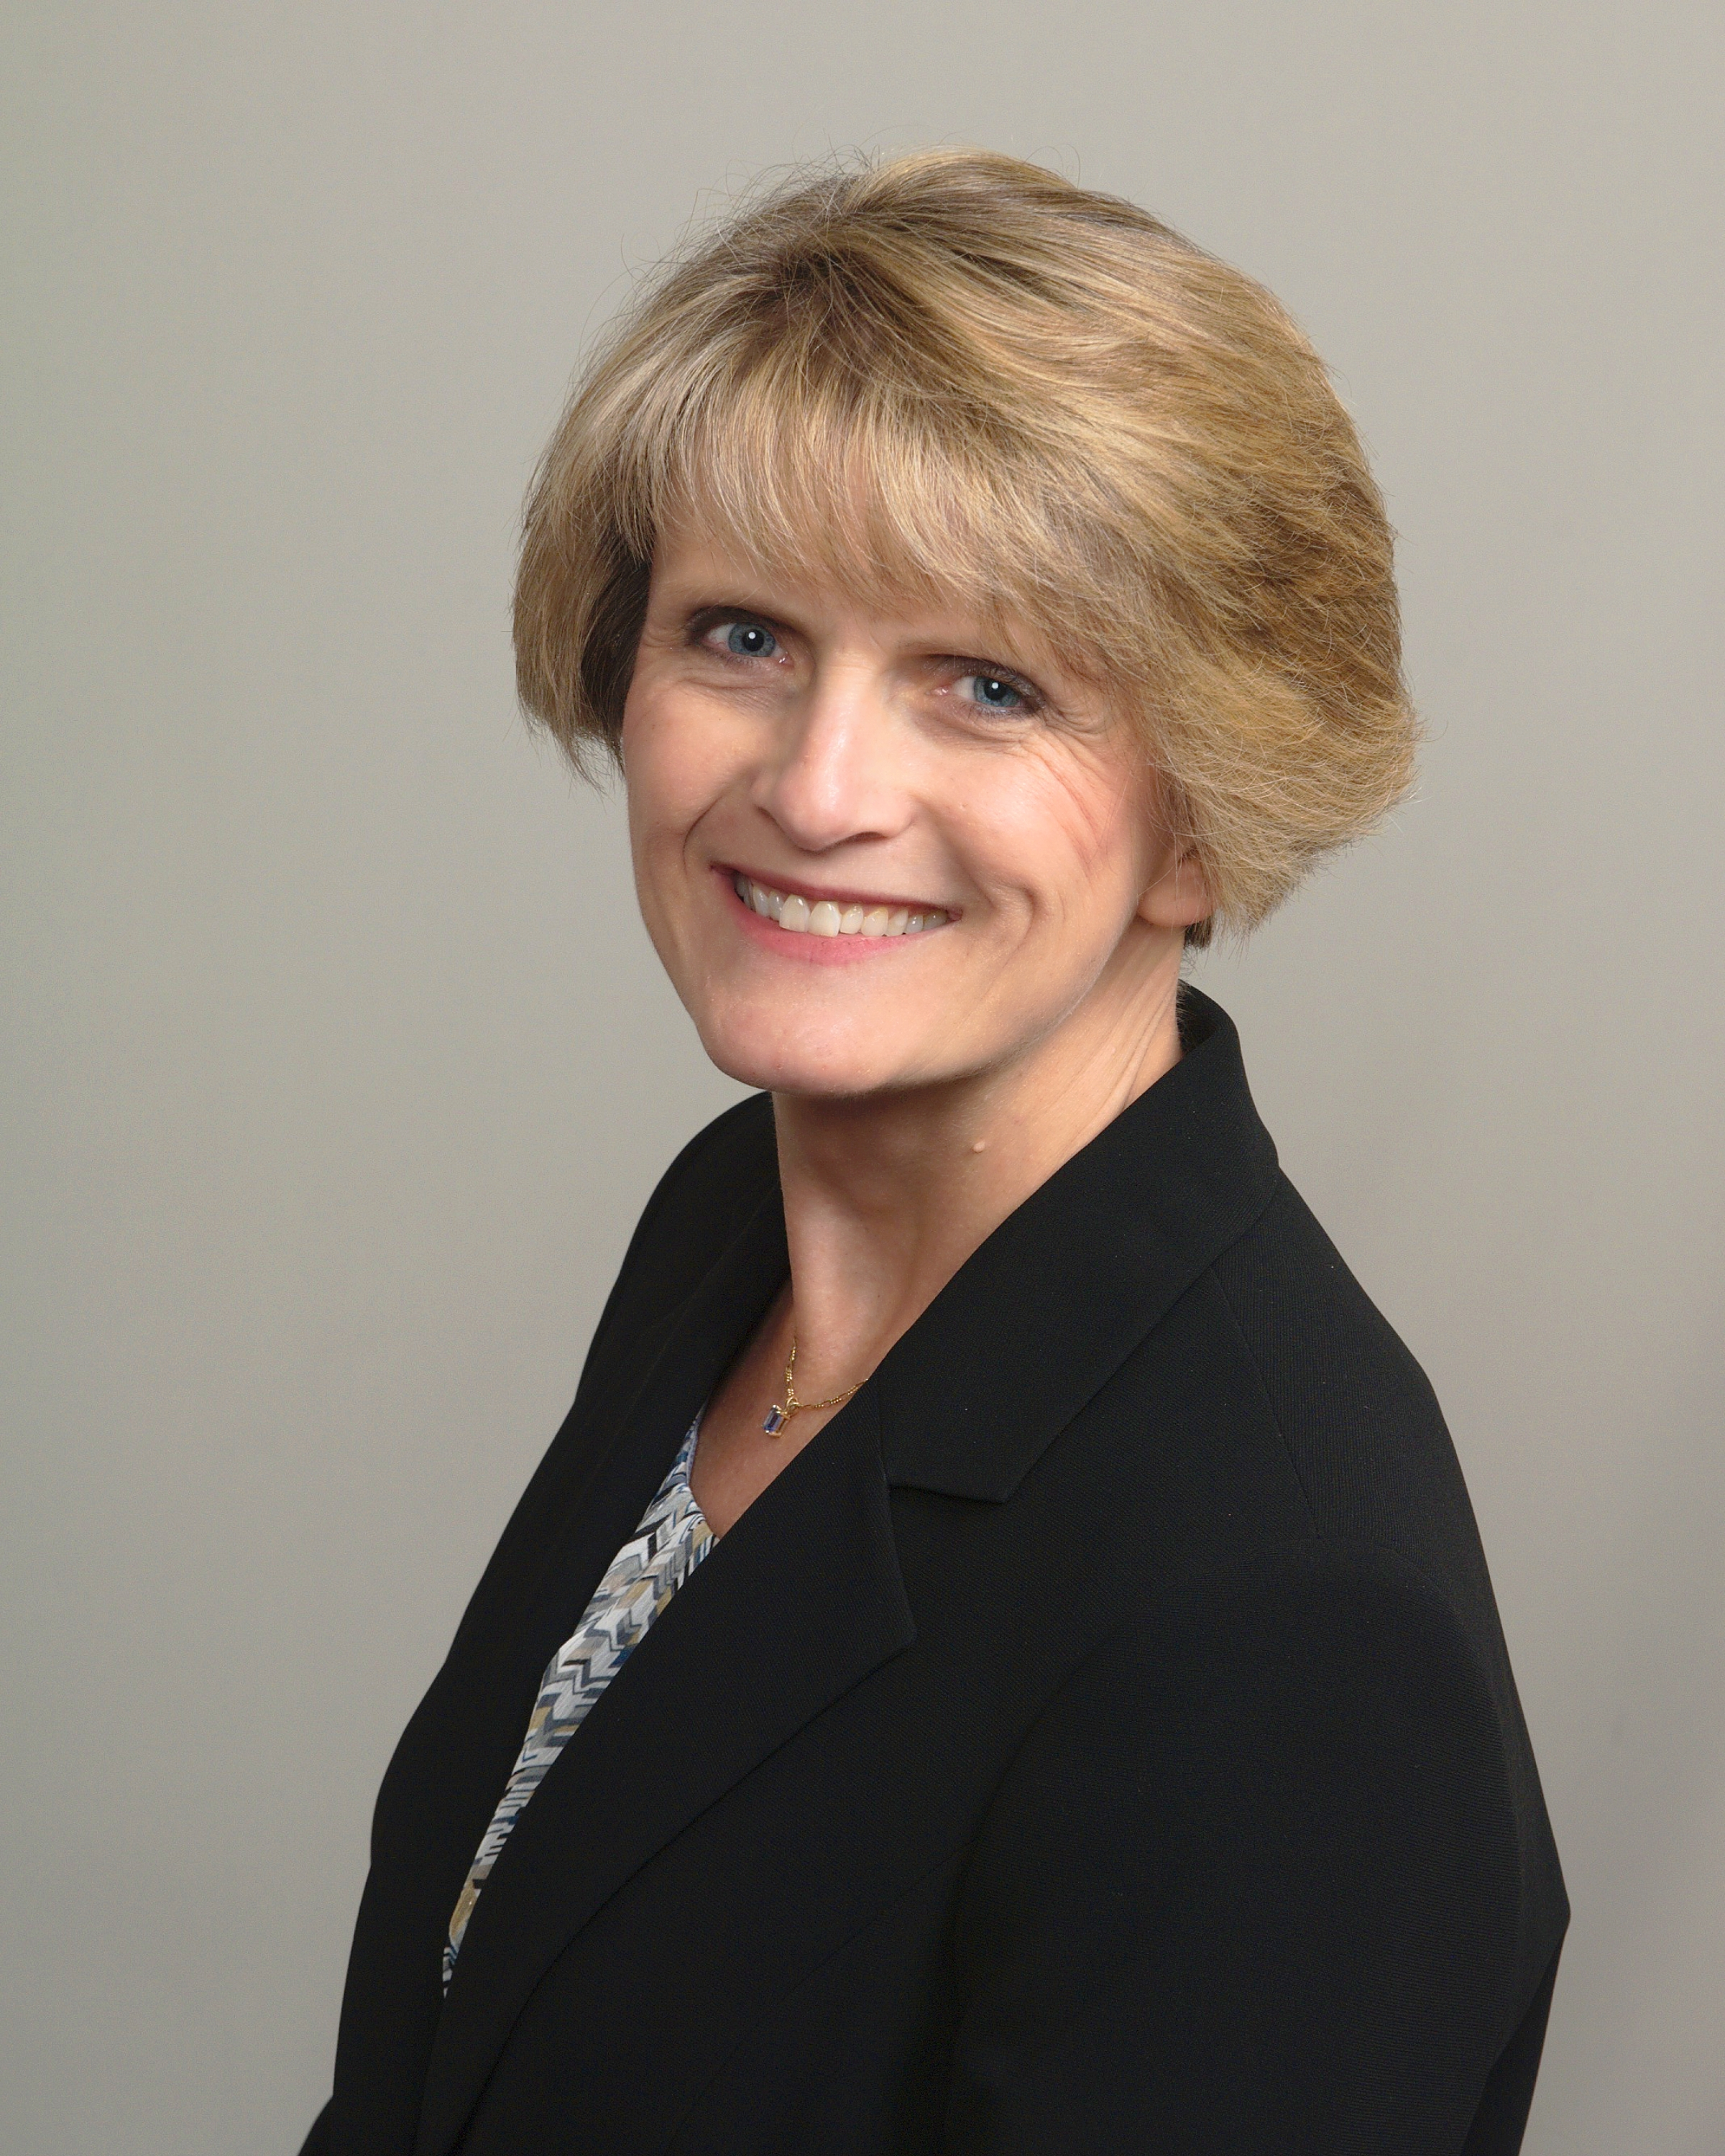 Jennifer H. Jones, Chief Executive Officer